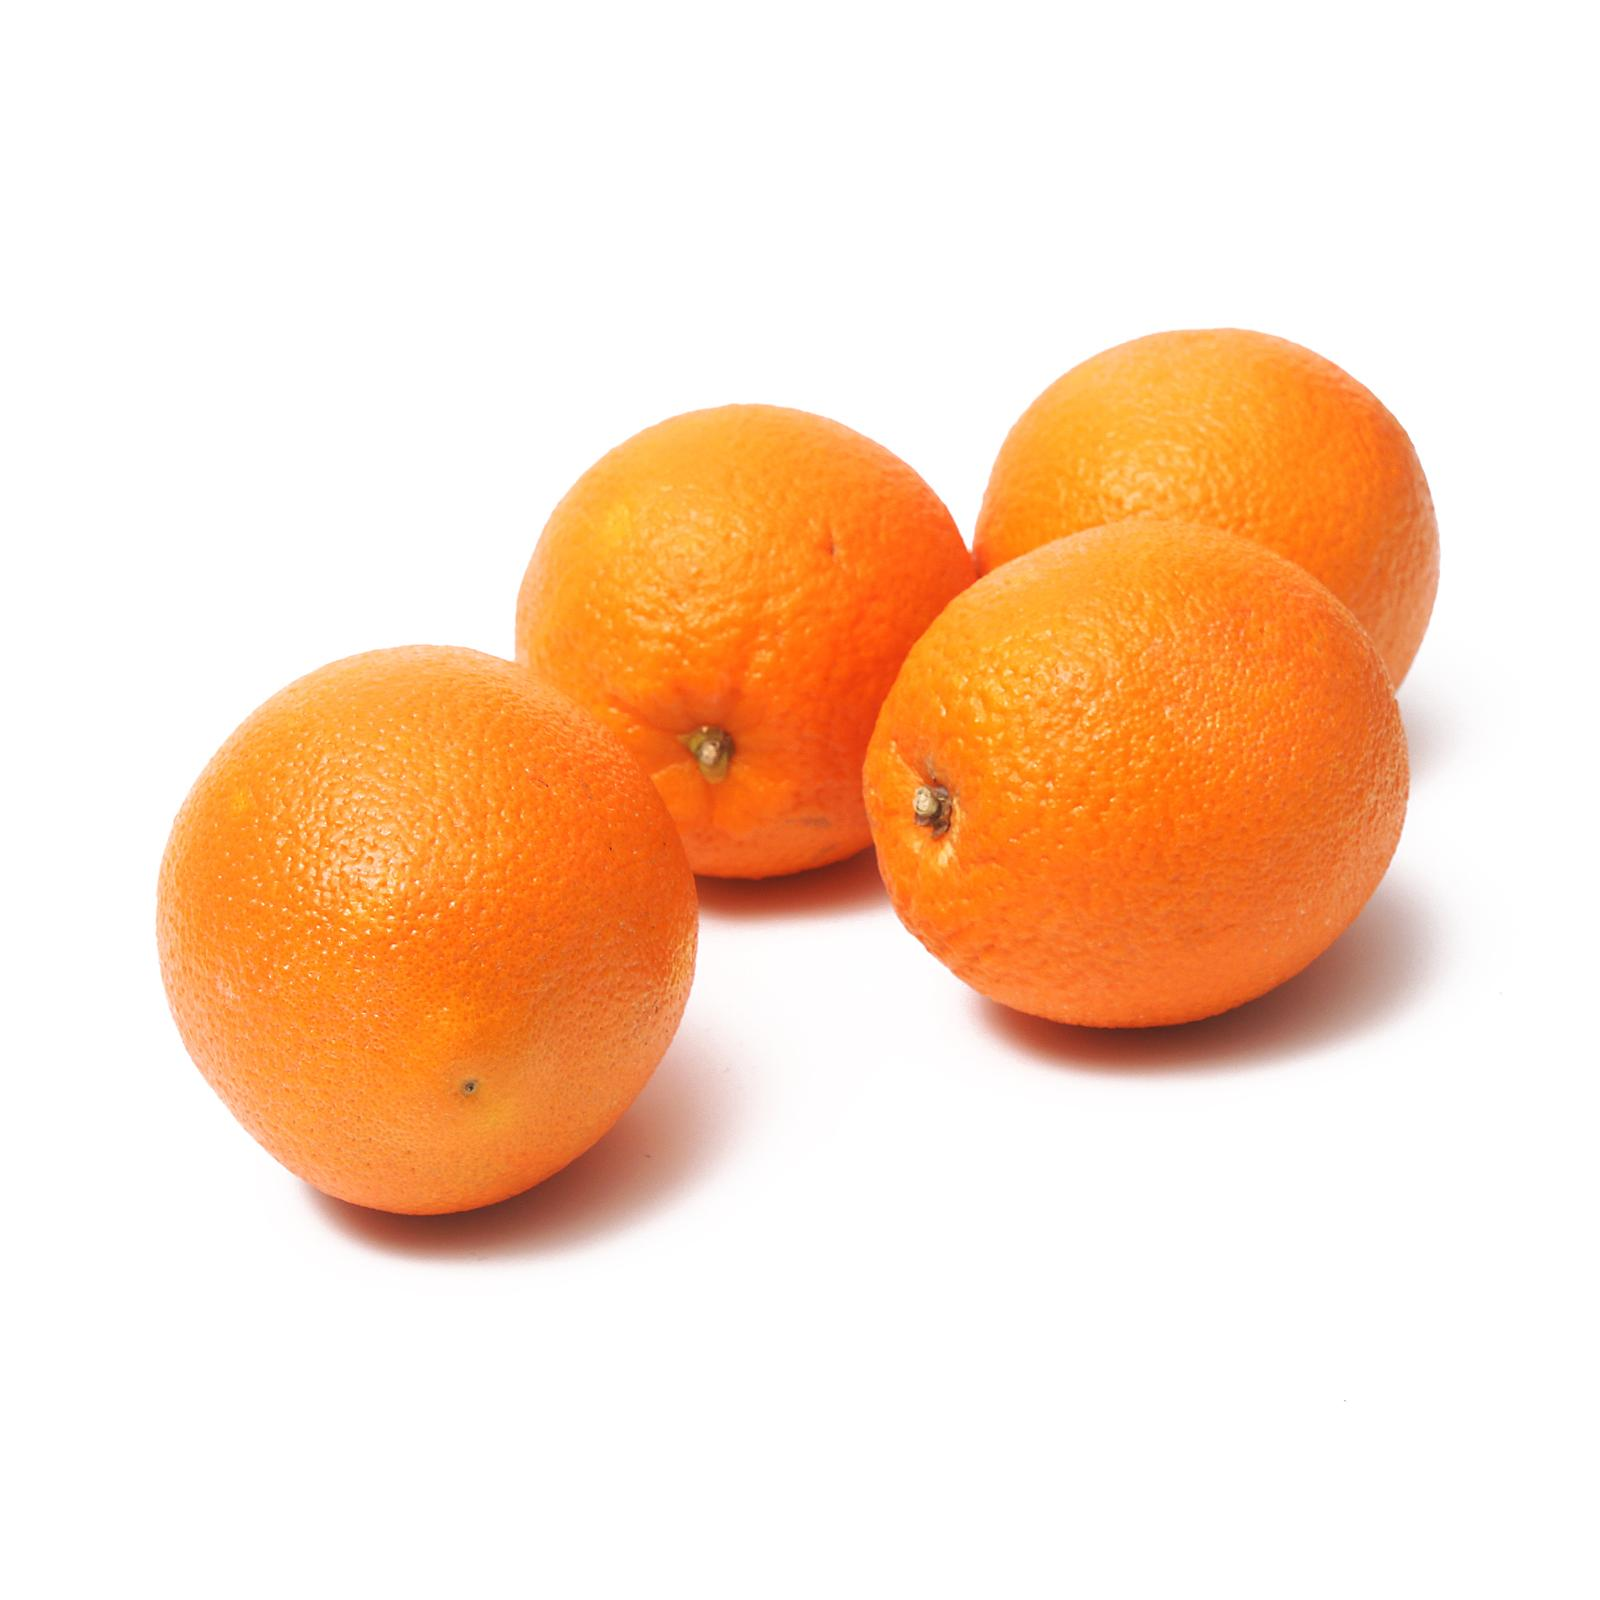 OTHERS High Brix Navel Oranges (bag) 800g